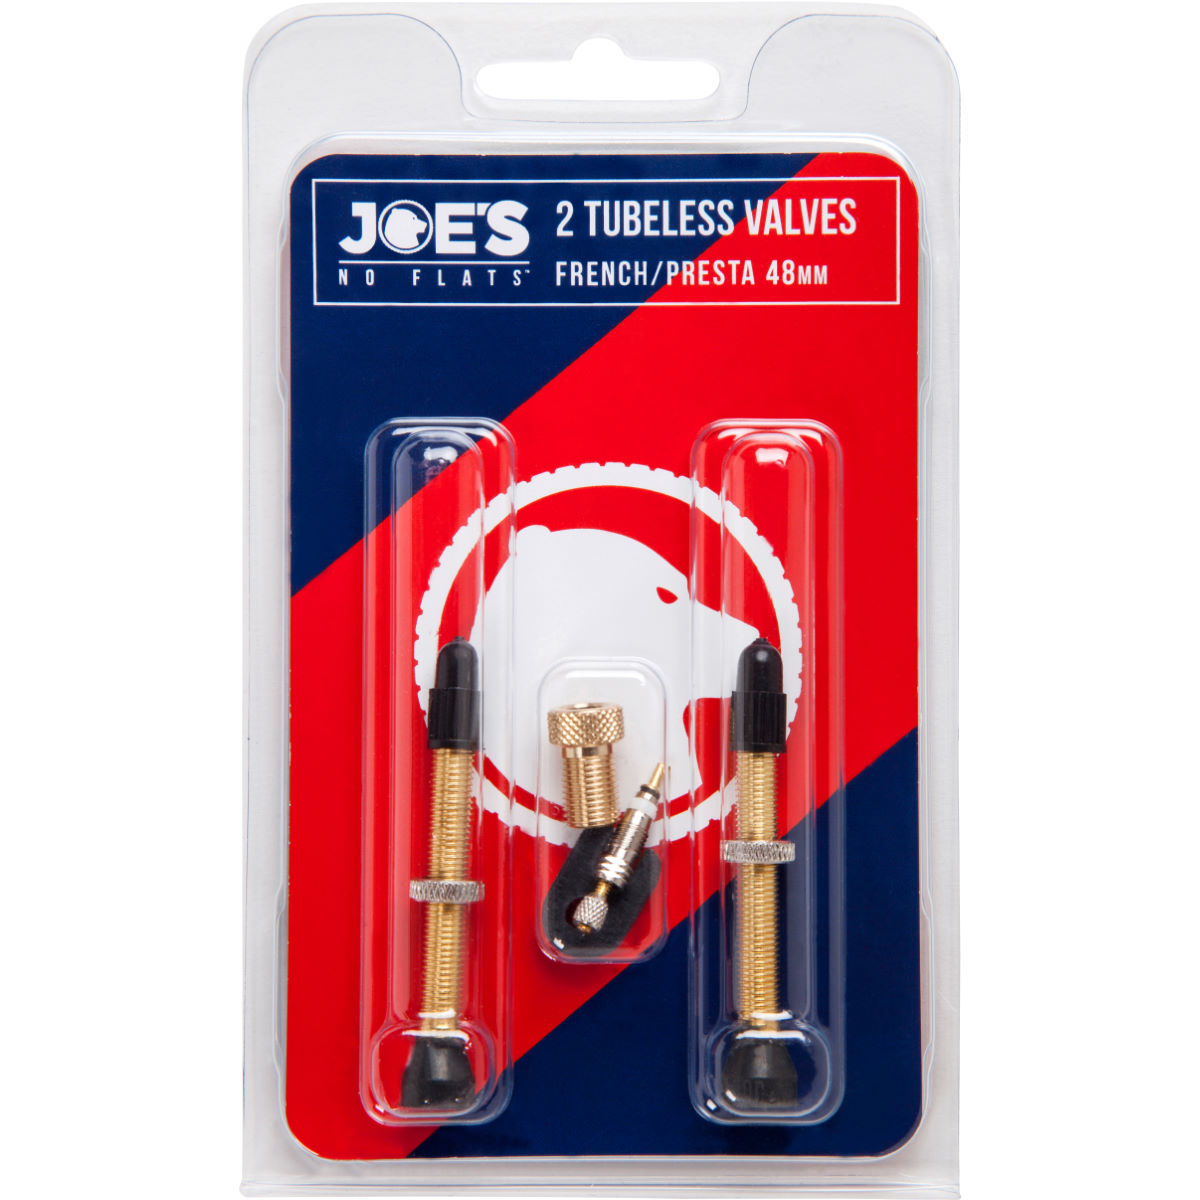 Kit de valve Presta Joe's No Flats Tubeless - 48c 48mm Presta